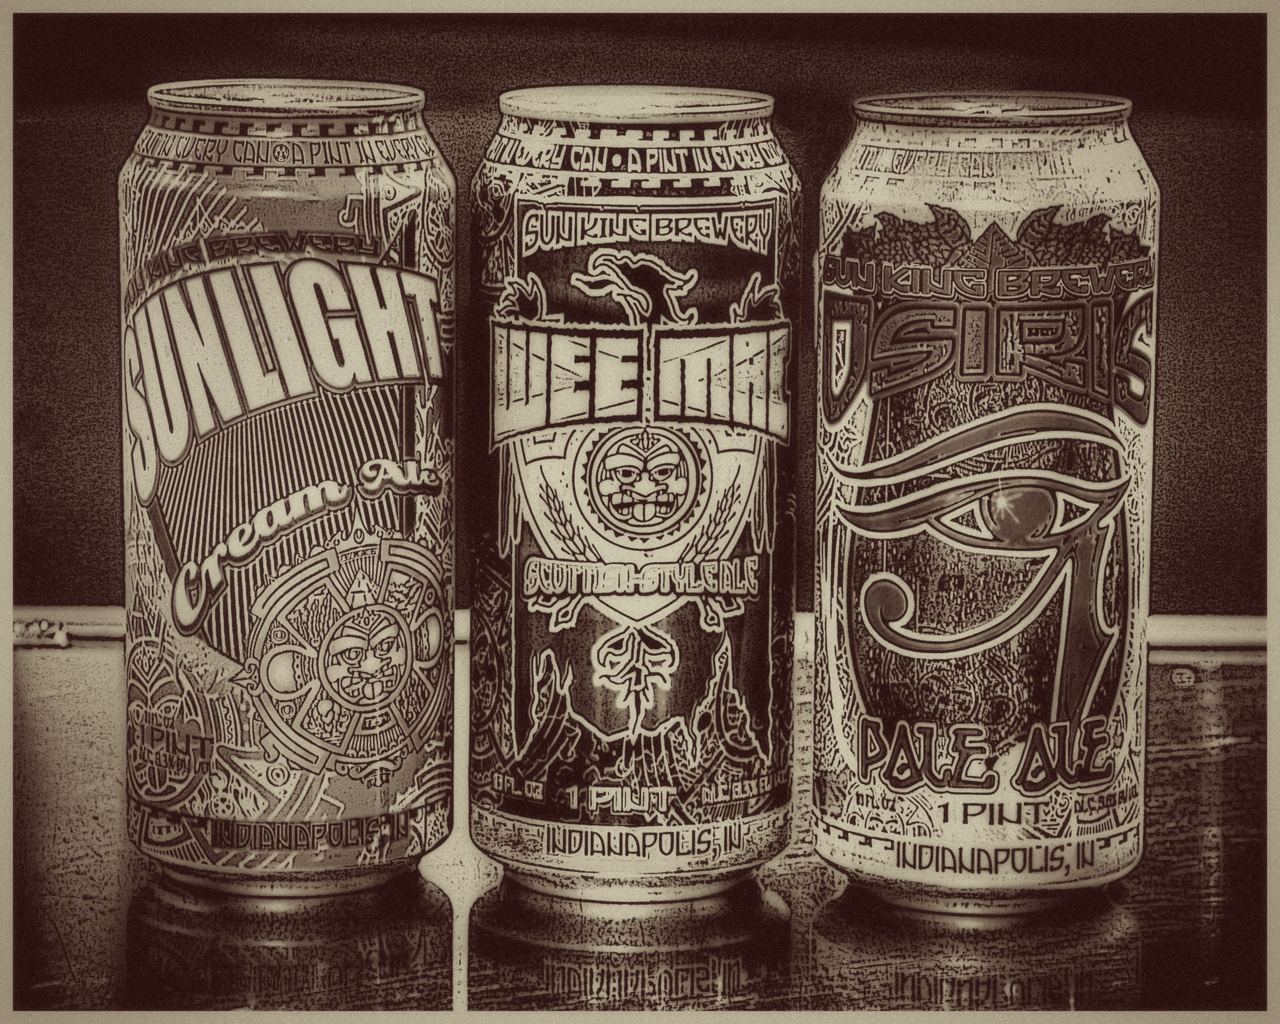 Sun King Brewing by Kel Kyle (© 2013 All Rights Reserved).